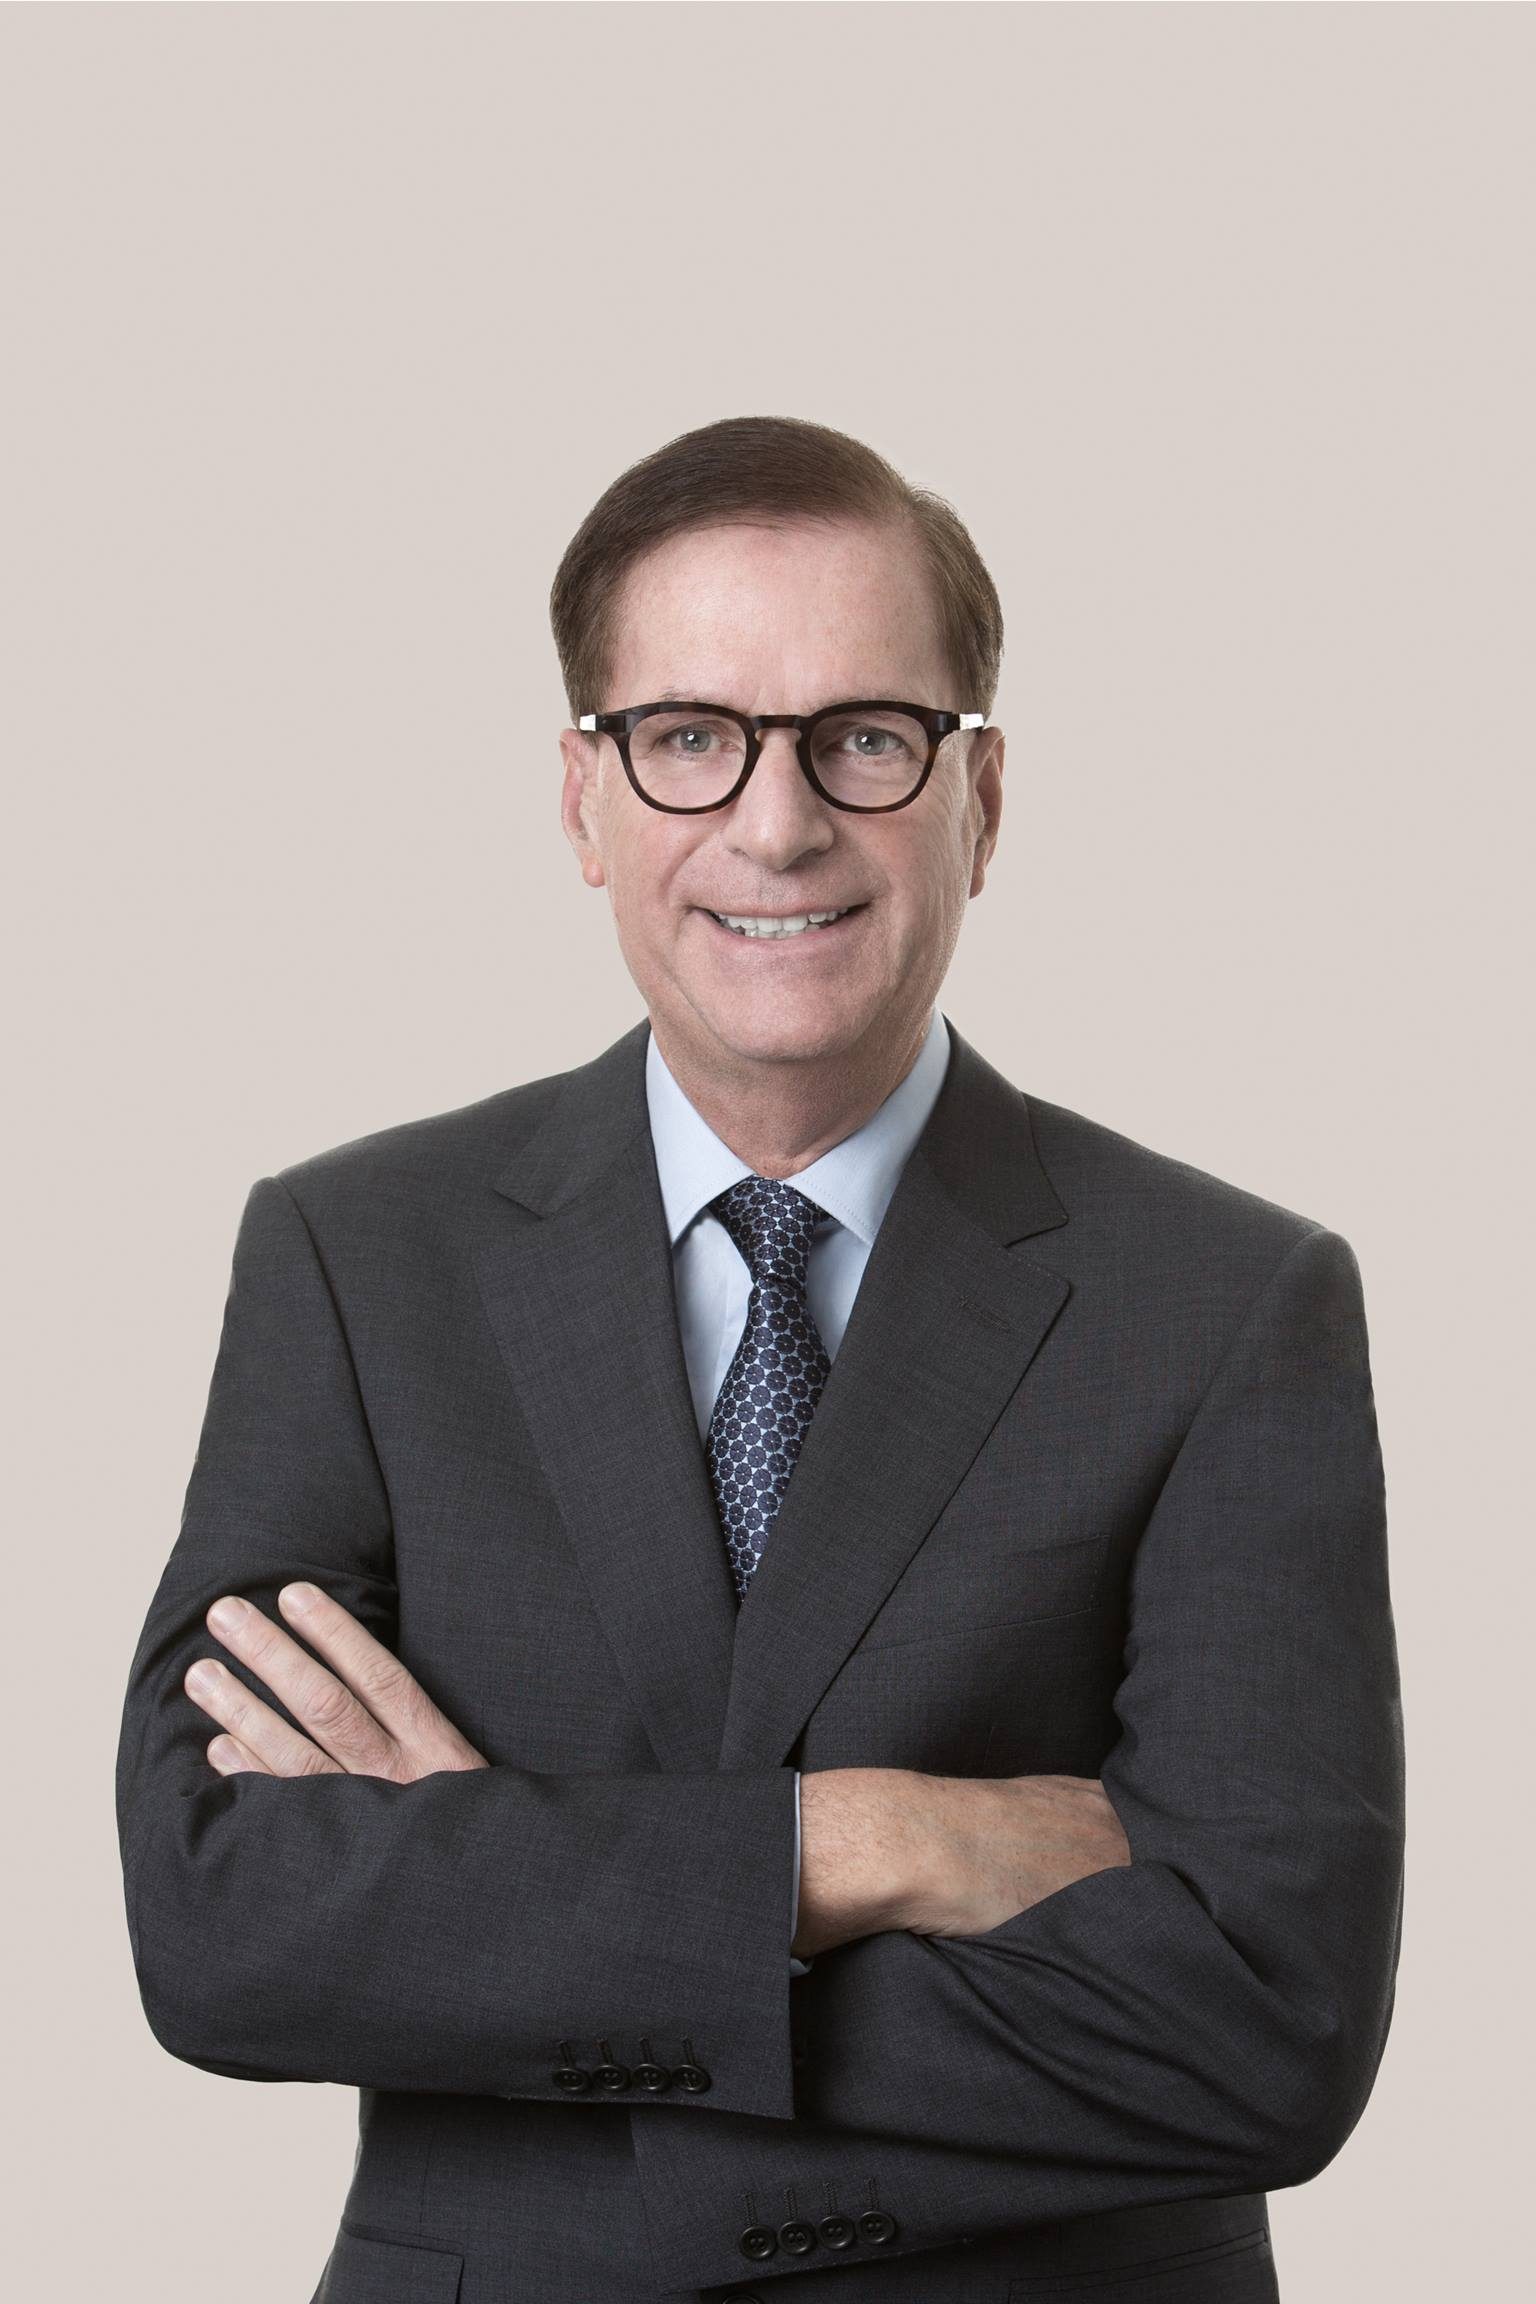 Jean M. Gagné Commercial and Business Law Partner in Montréal